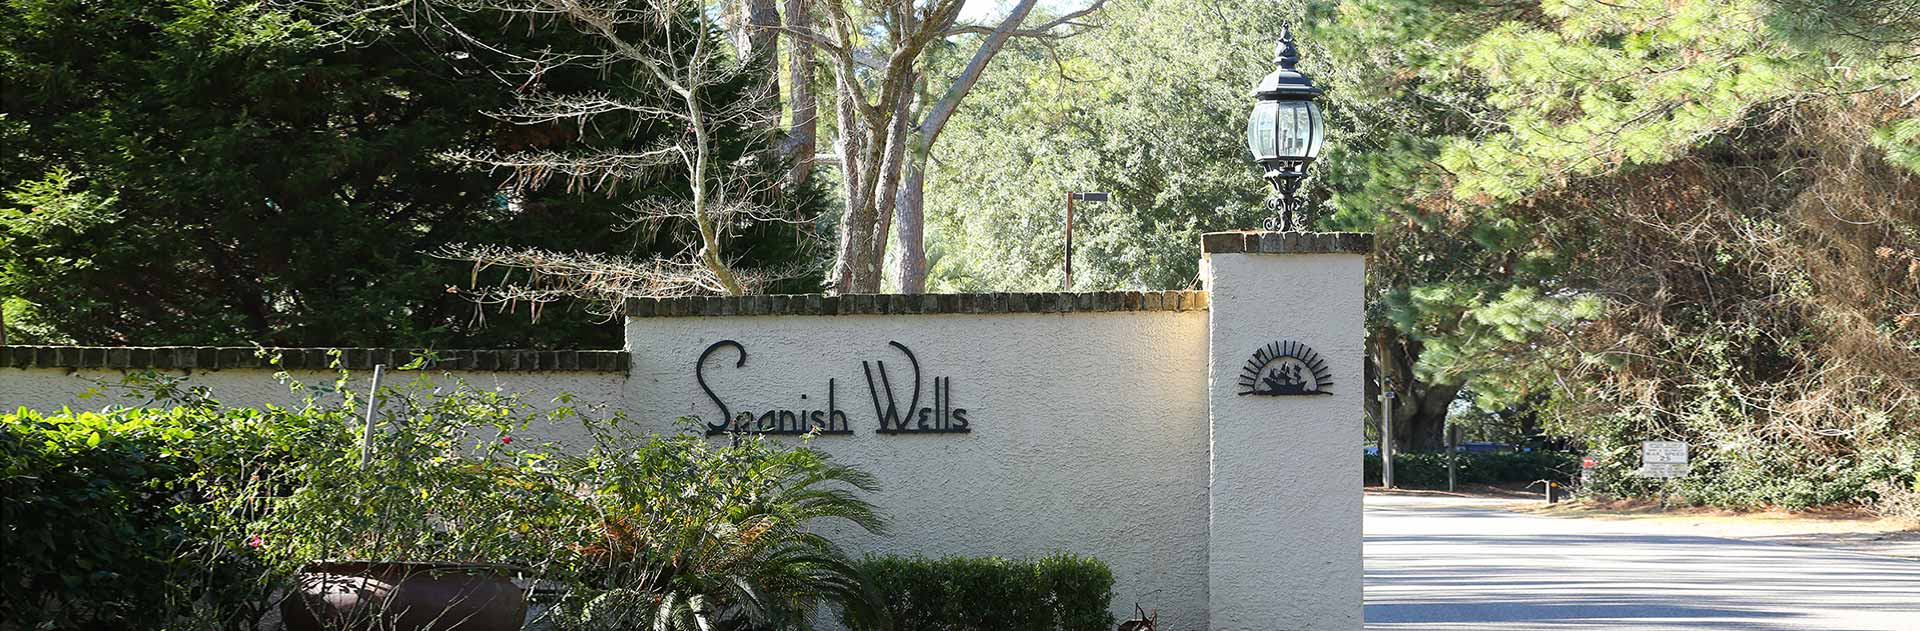 Spanish Wells Hilton Head Community Sign